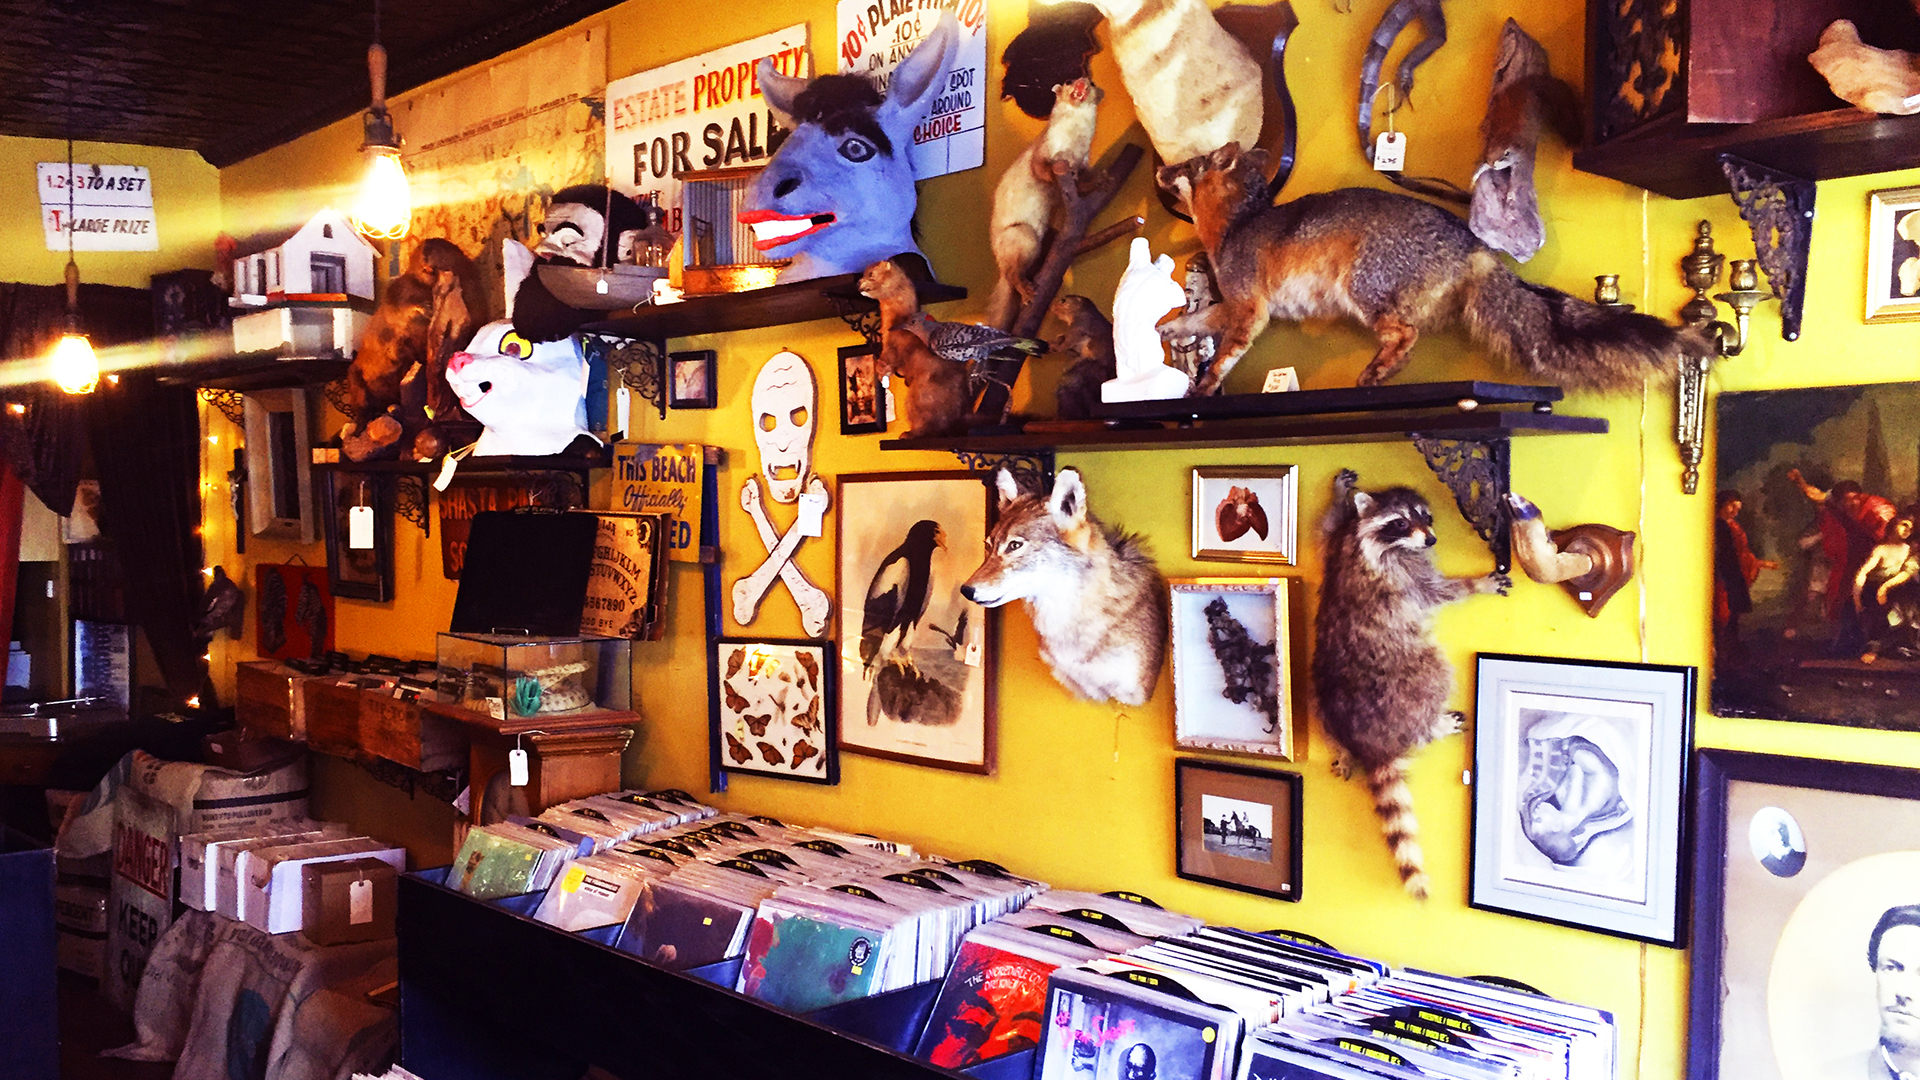 Stuffed animal heads and other body parts